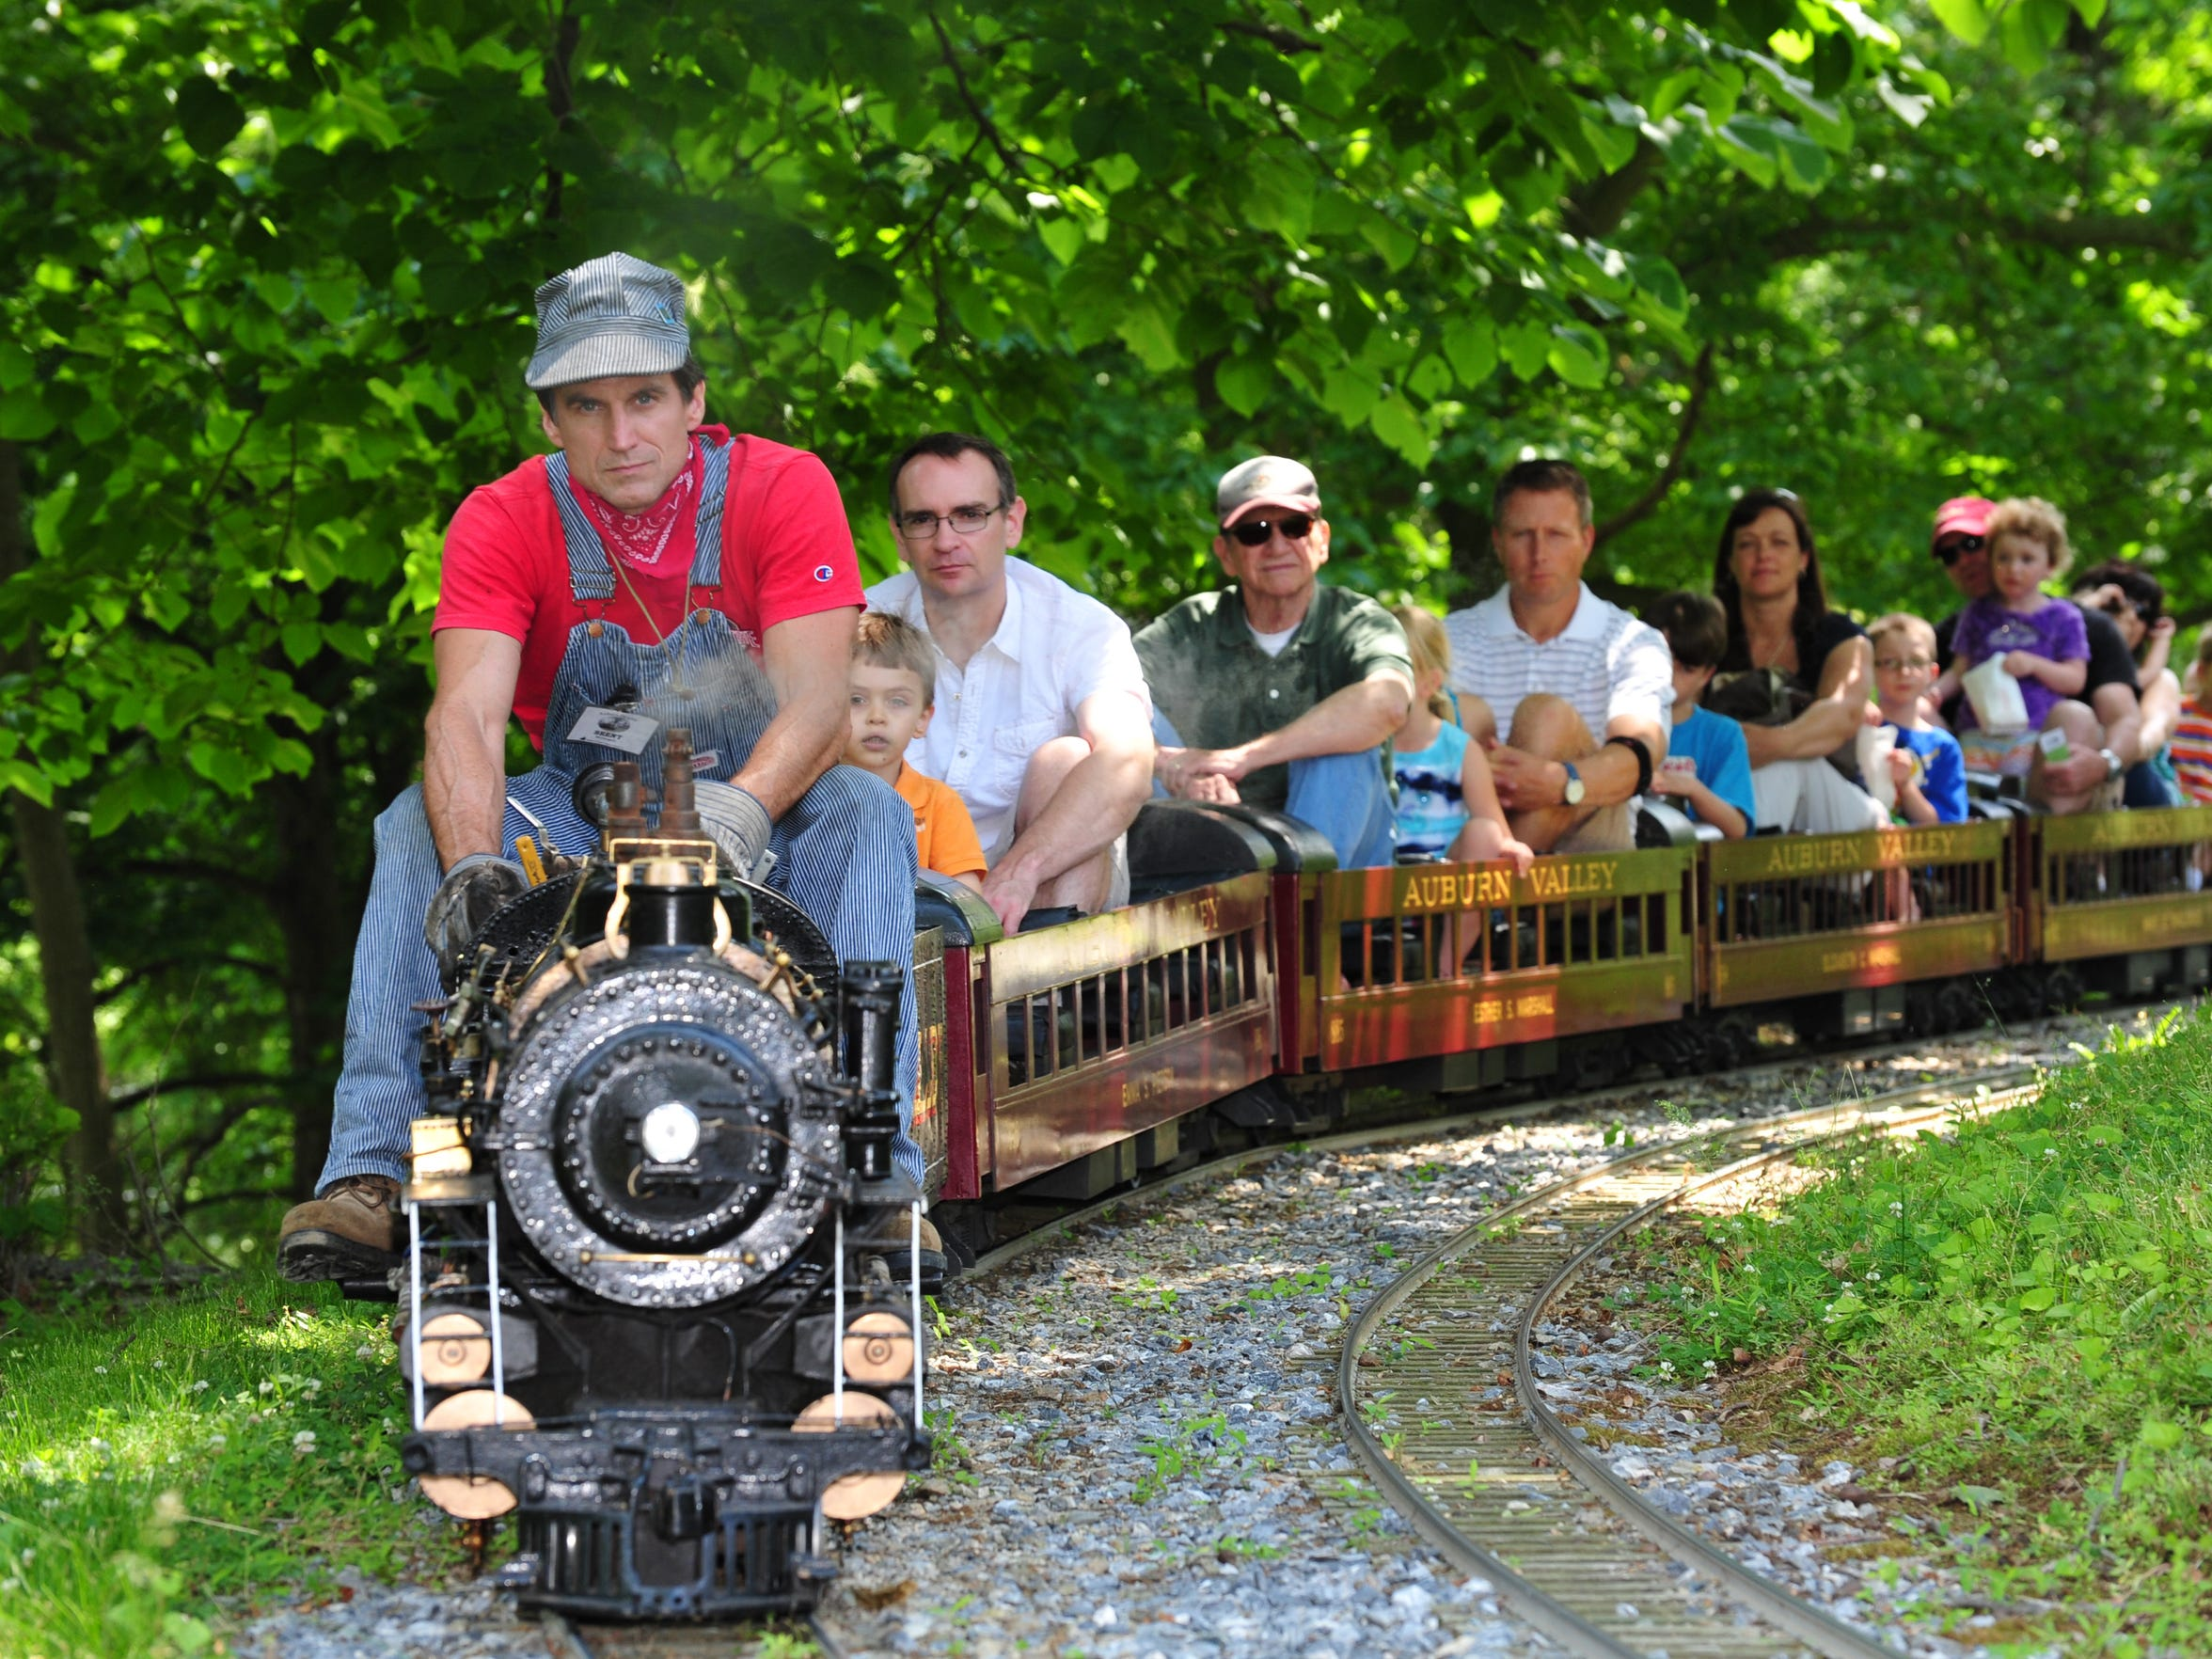 Train Day at Auburn Heights runs from 12:30 to 4:30 p.m. Sunday.